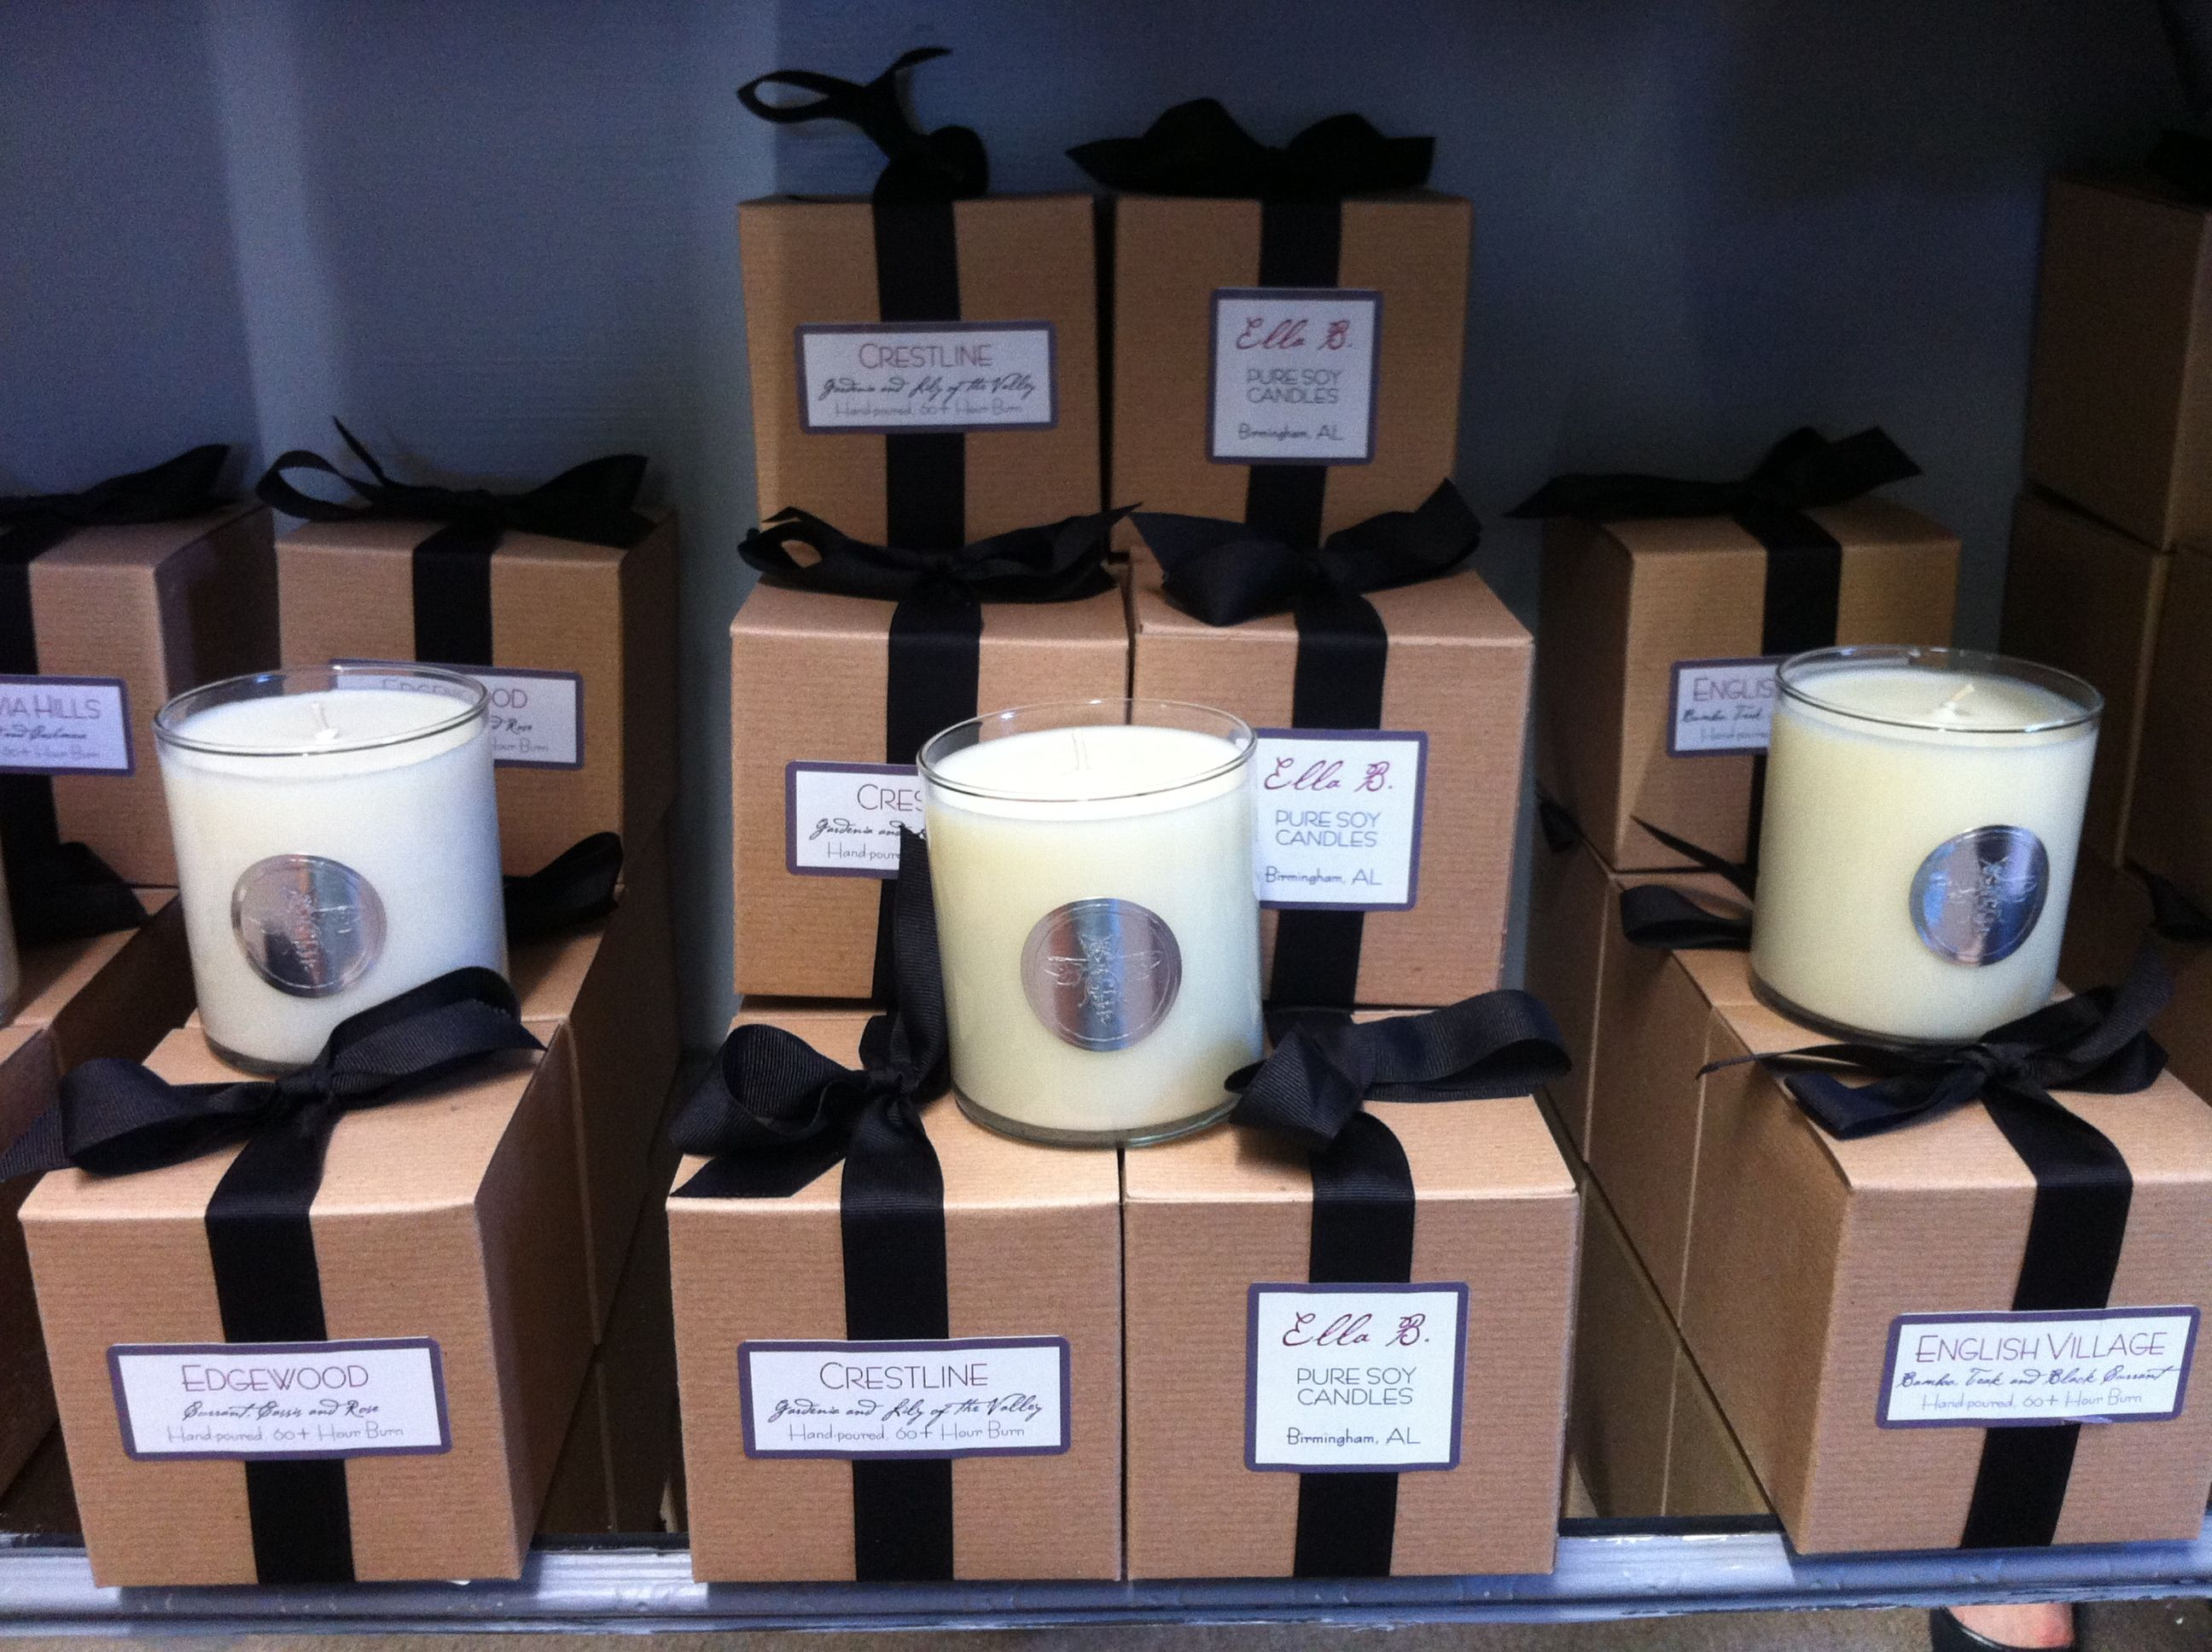 Candles by Ella B with scents named after Birmingham, AL neighborhoods #jlbshopsaveshare